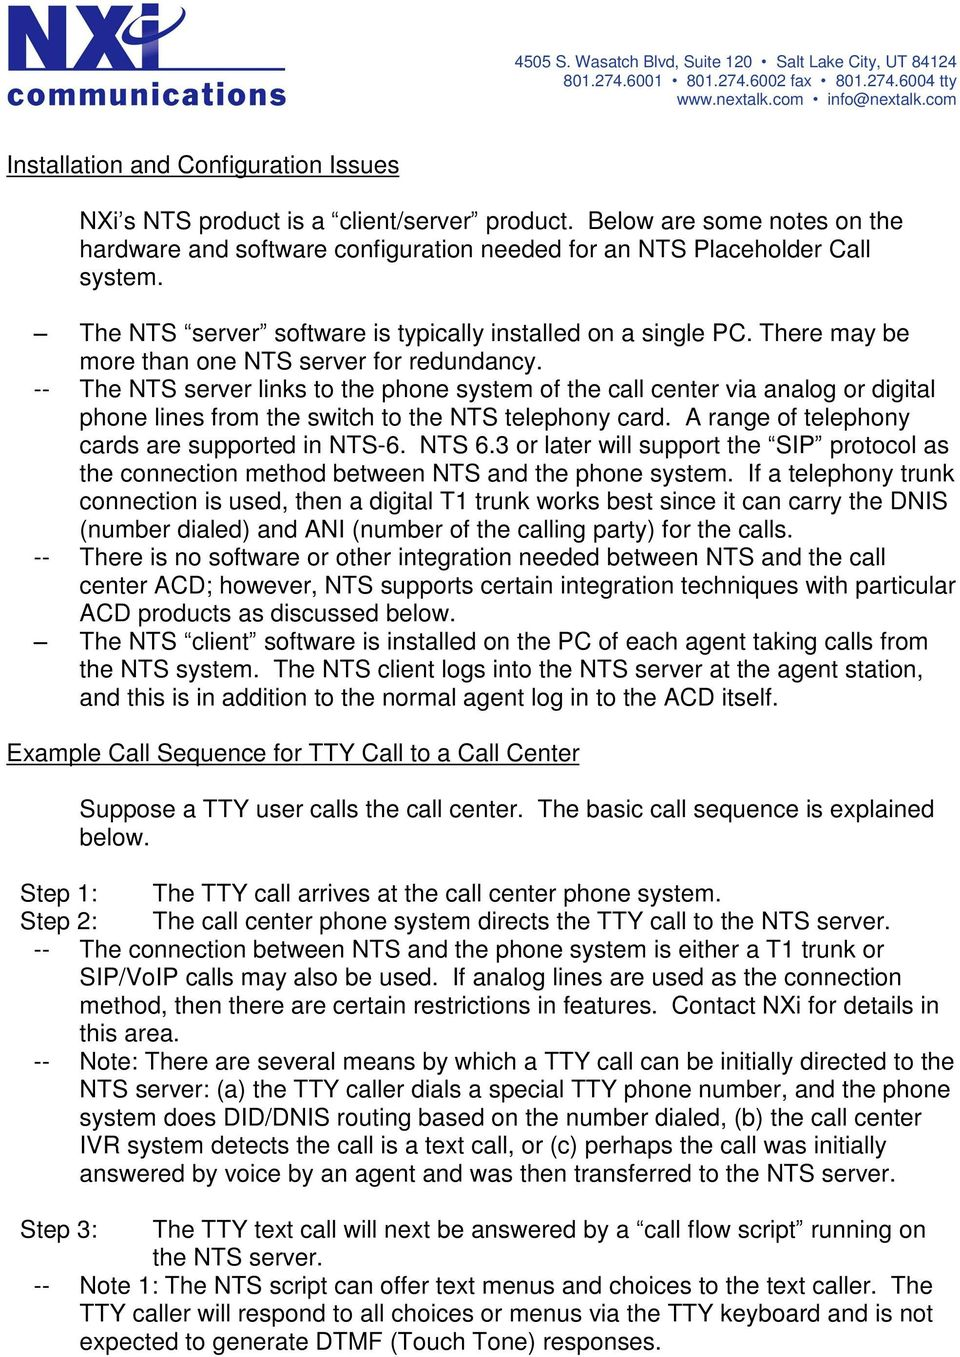 -- The NTS server links to the phone system of the call center via analog or digital phone lines from the switch to the NTS telephony card. A range of telephony cards are supported in NTS-6. NTS 6.